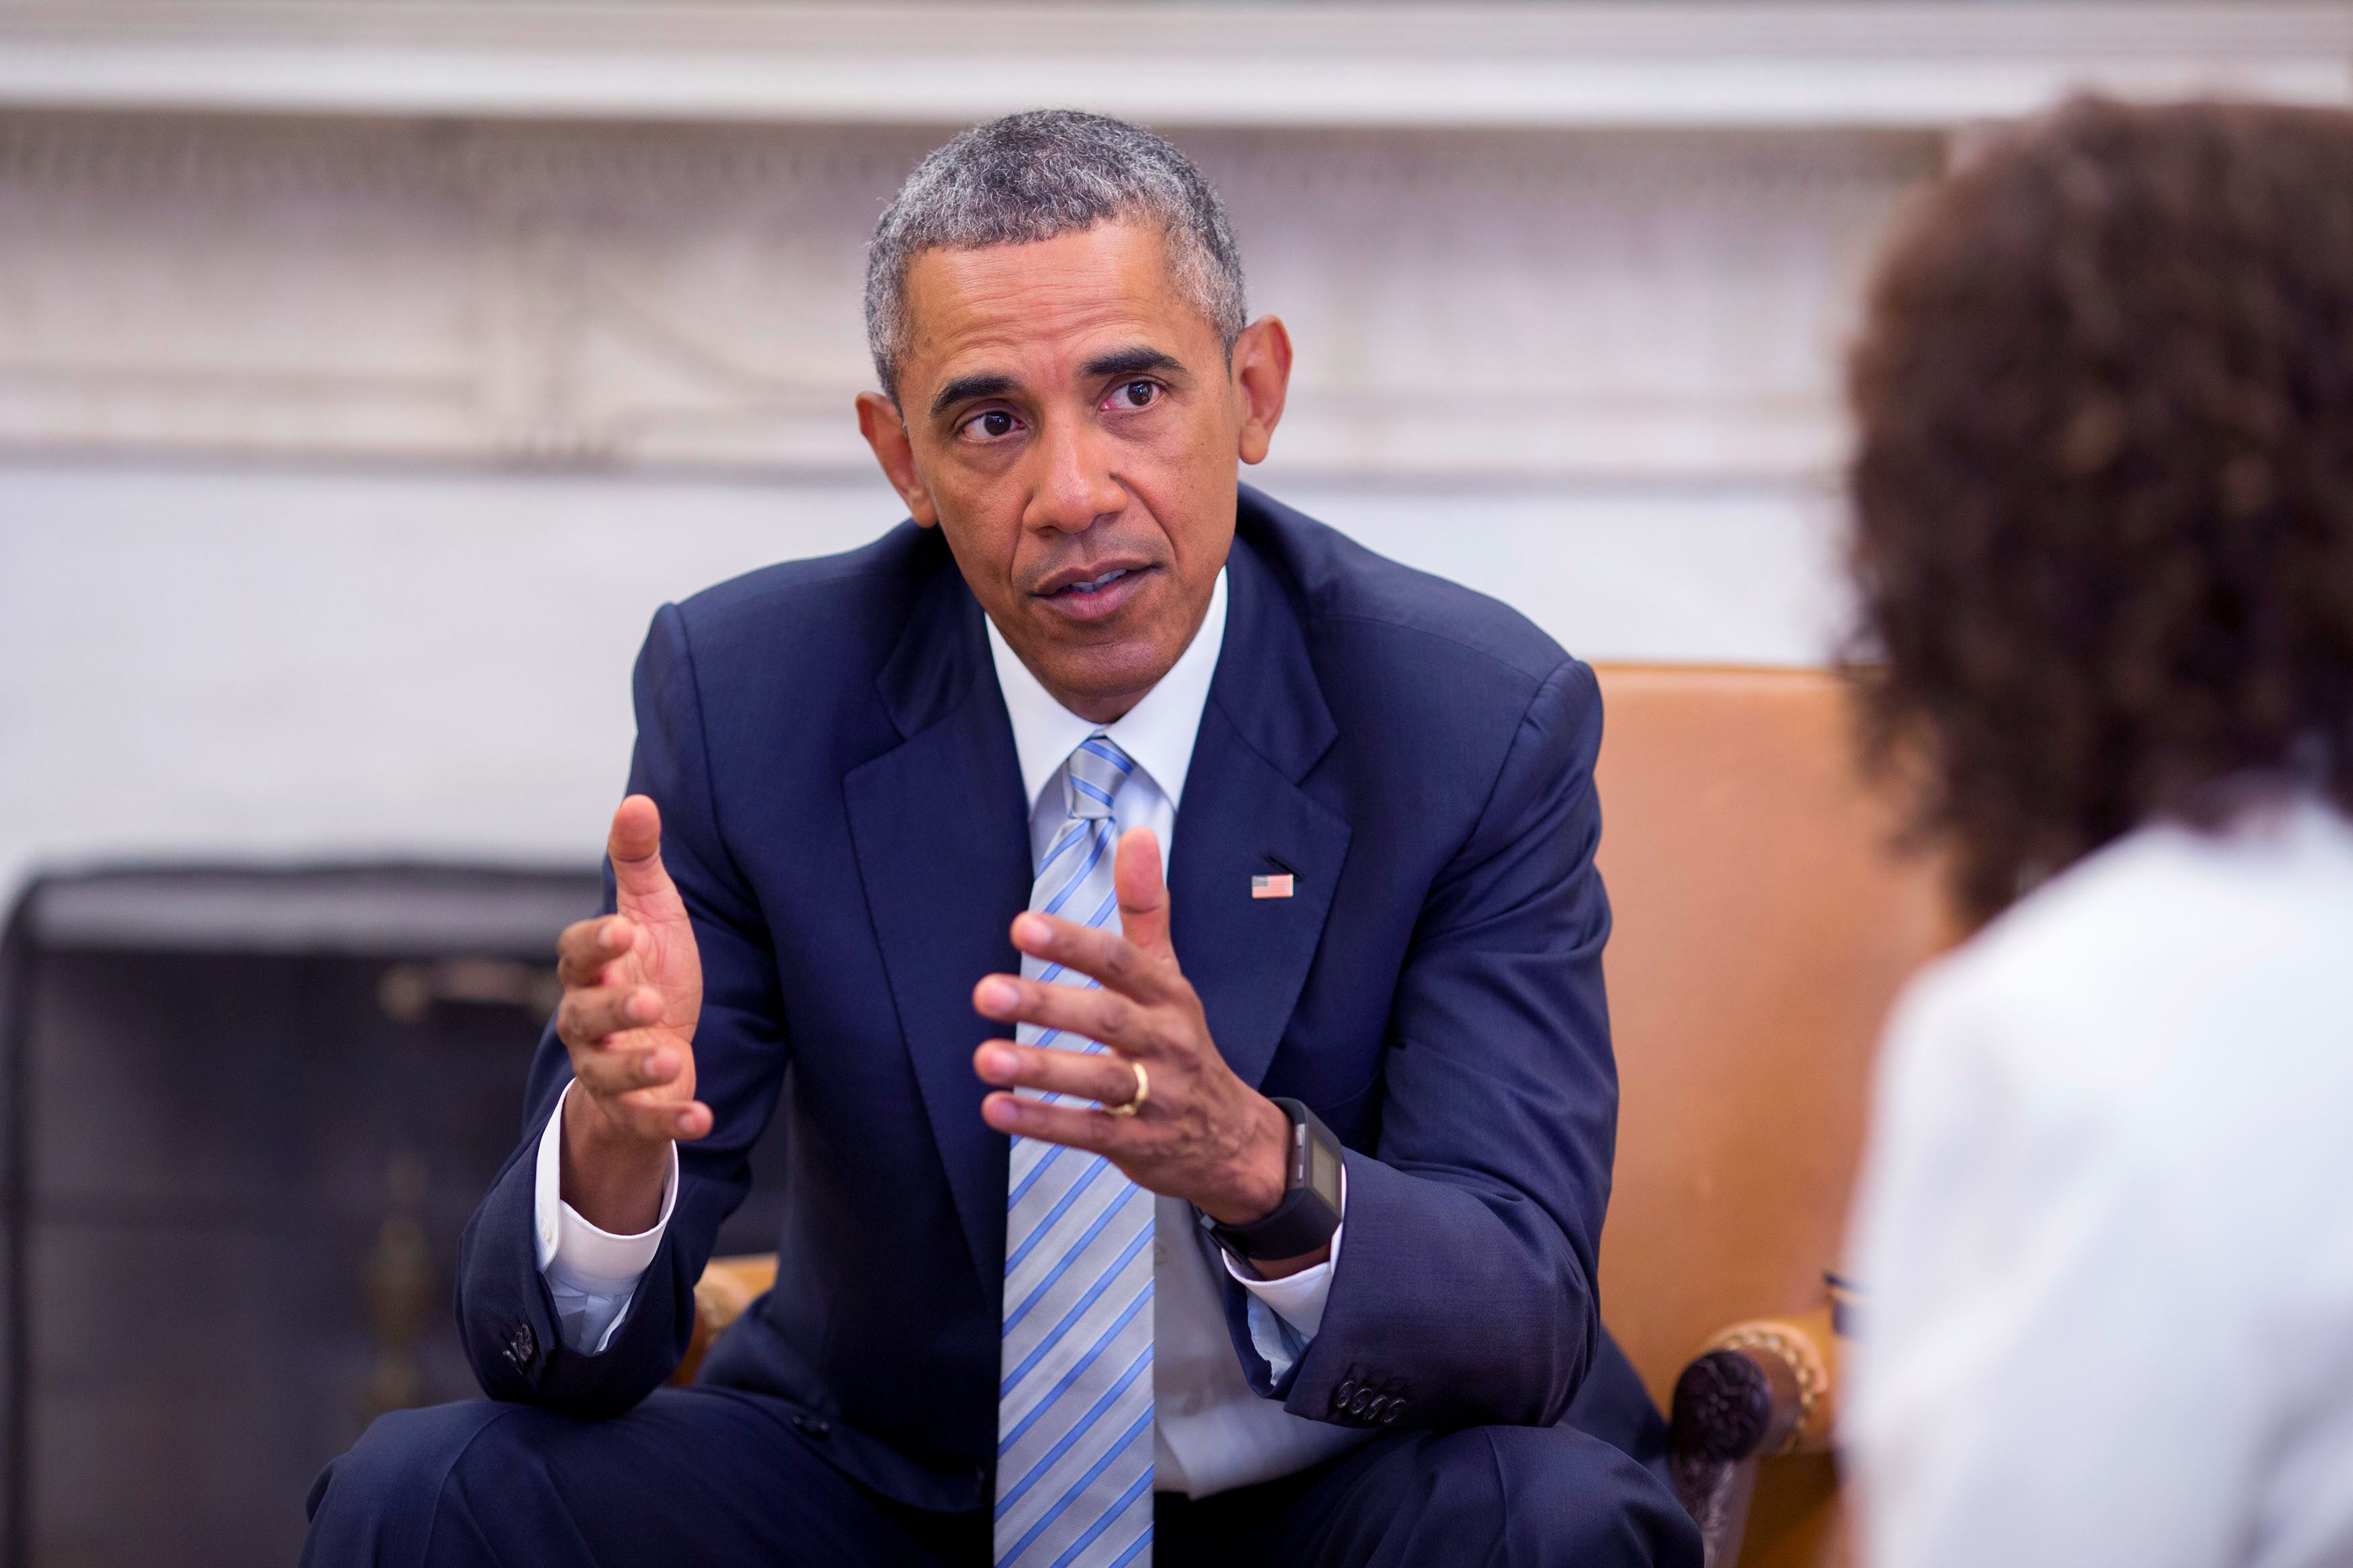 Ex-President Barack Obama spoke passionately about American Jews in an Historic Interview with the Forward. (Image Source: The Forward)